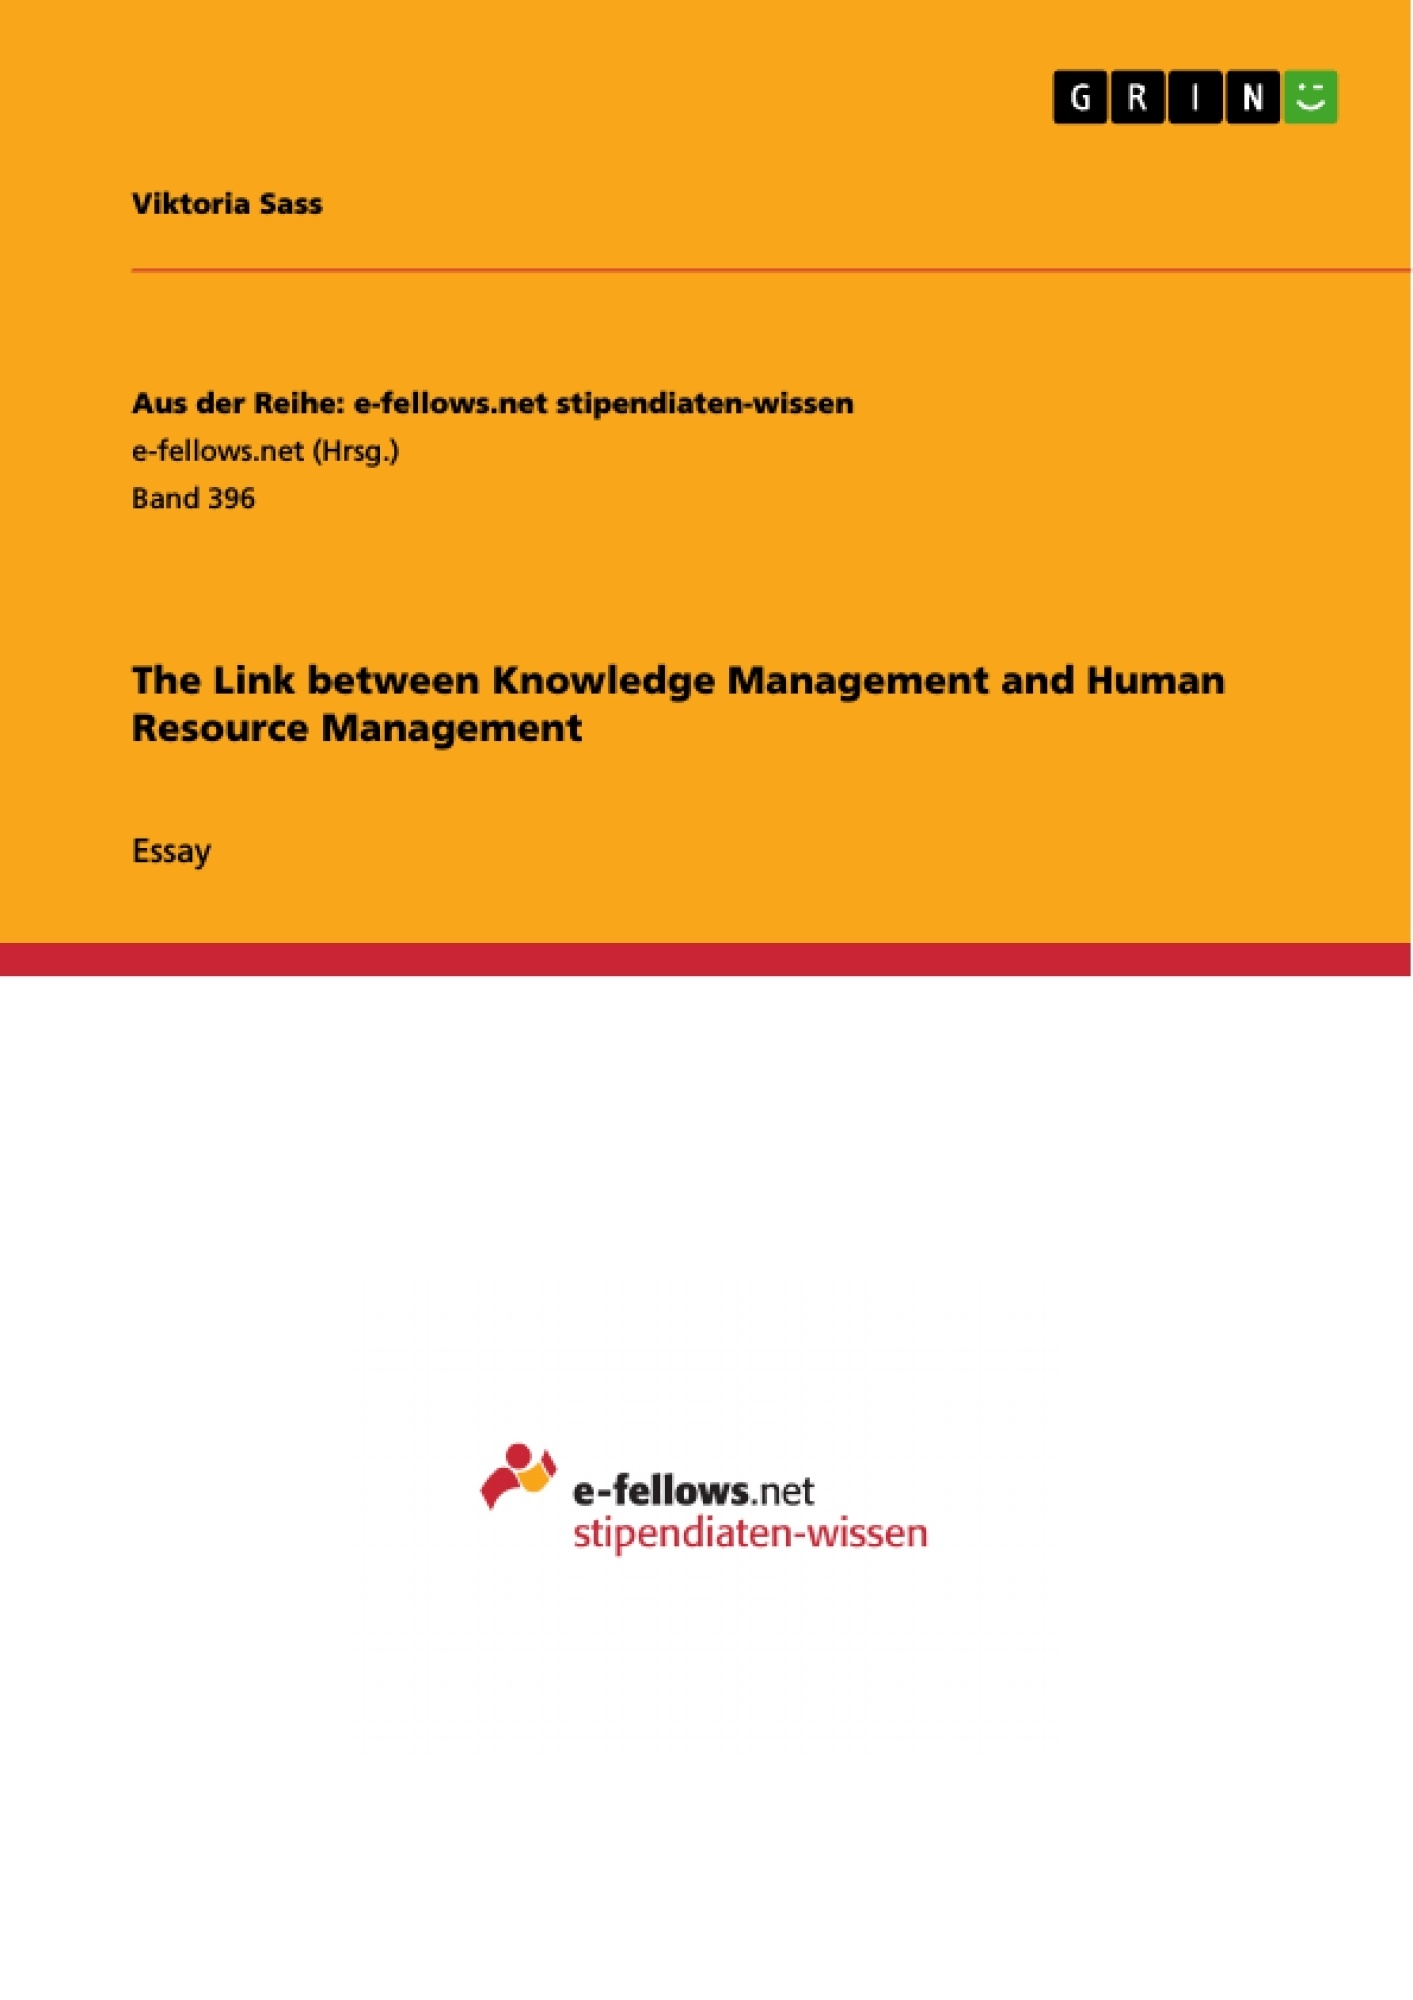 knowledge management essay cover letter knowledge management  the link between knowledge management and human resource the link between knowledge management and human resource